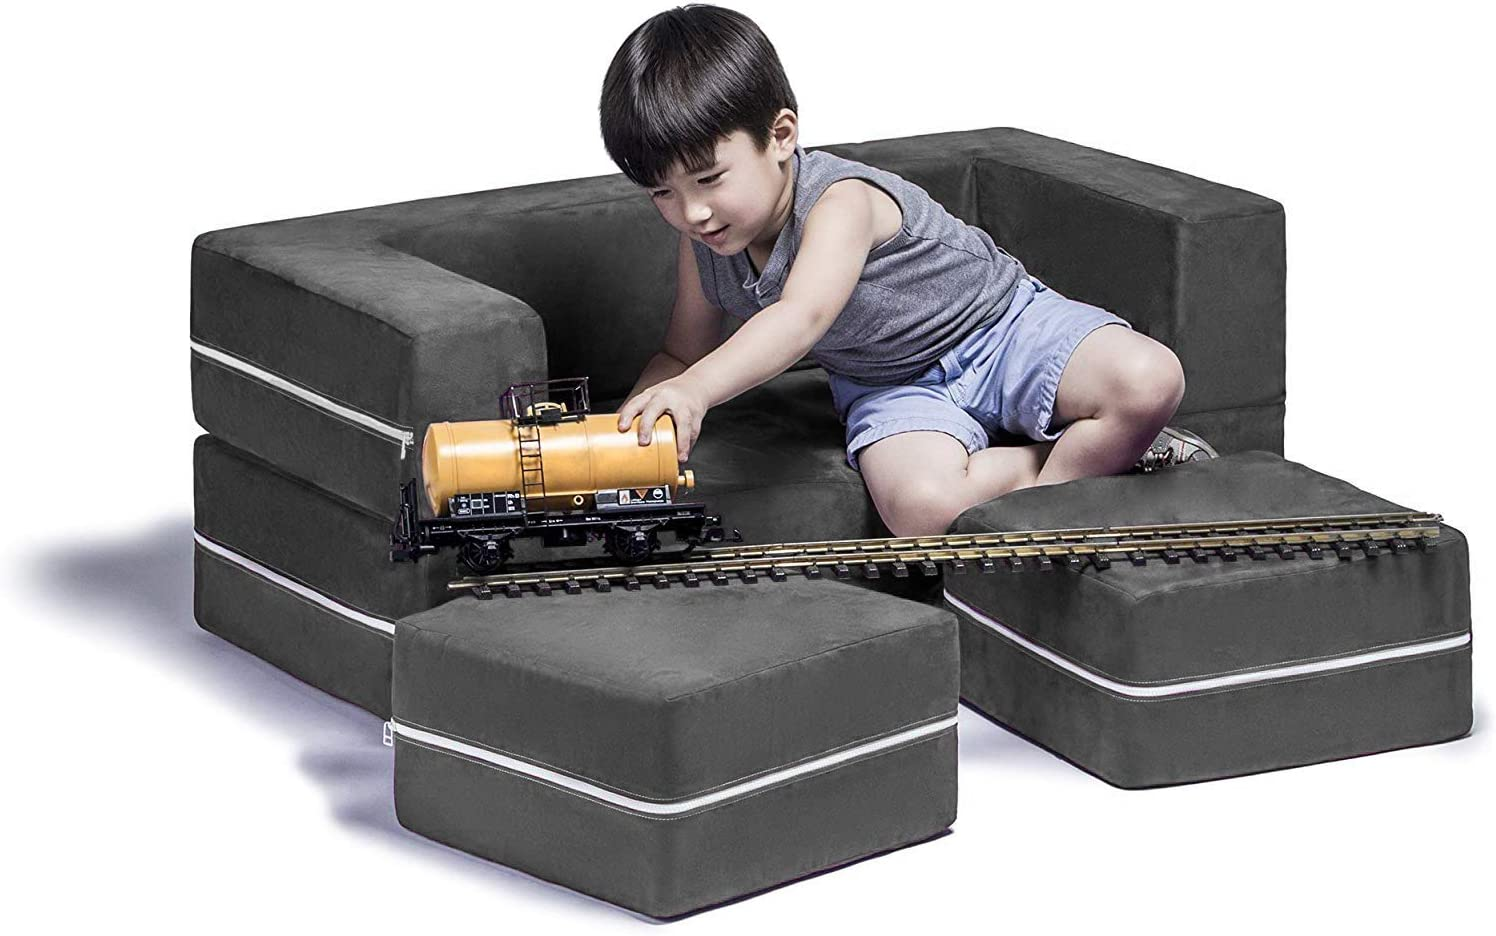 Jaxx Zipline Modular Kids Loveseat & Ottomans/Fold Out Lounger, Charcoal